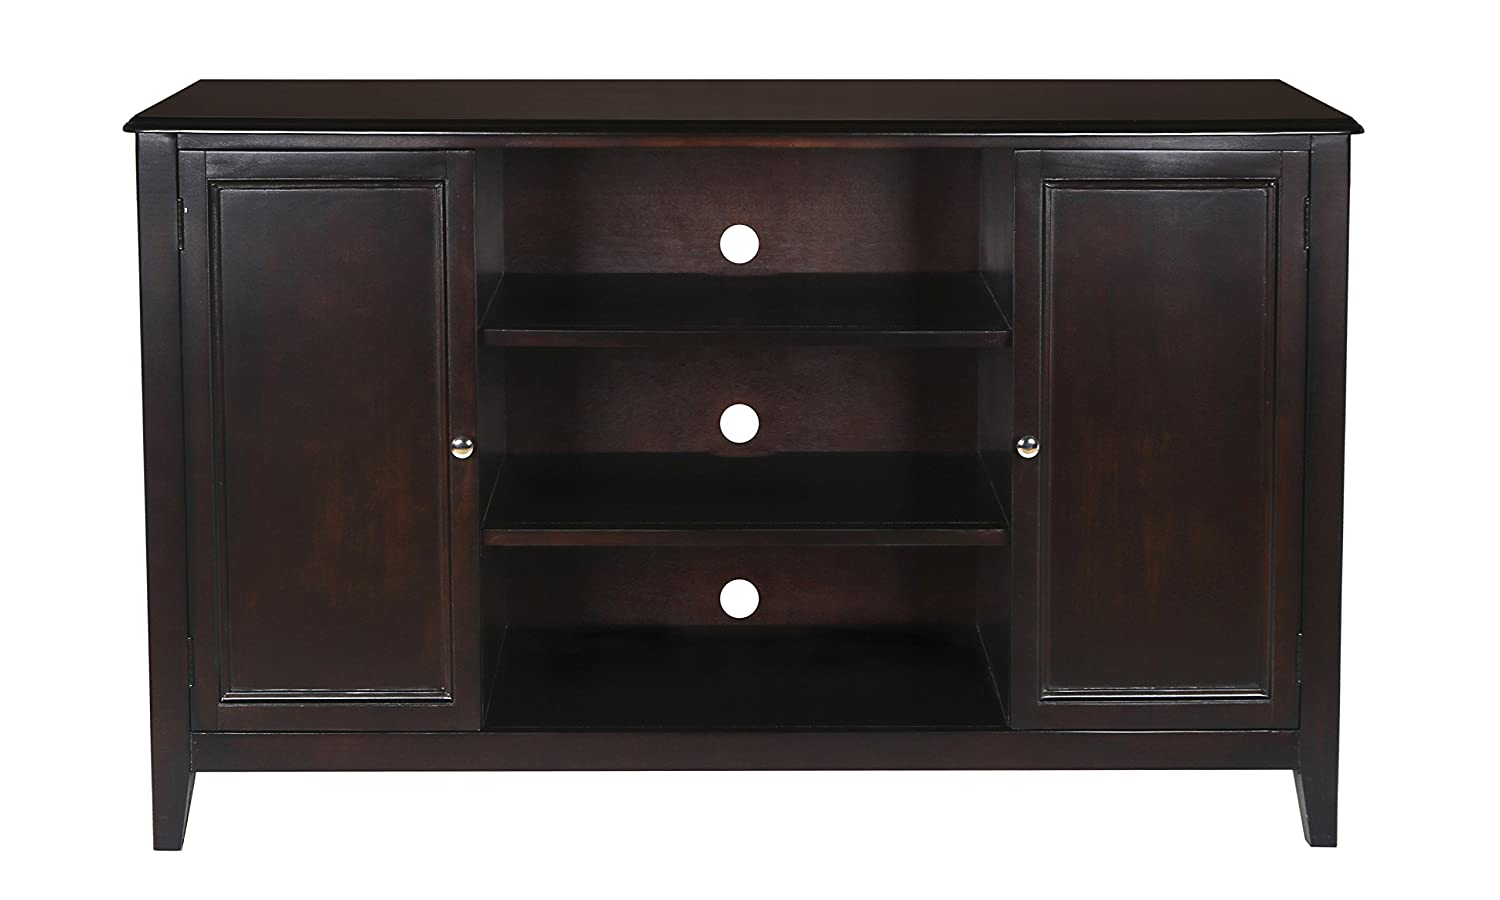 New Classic Ventura Black Cherry Entertainment Console New Classic Home Furnishings 10-700-10